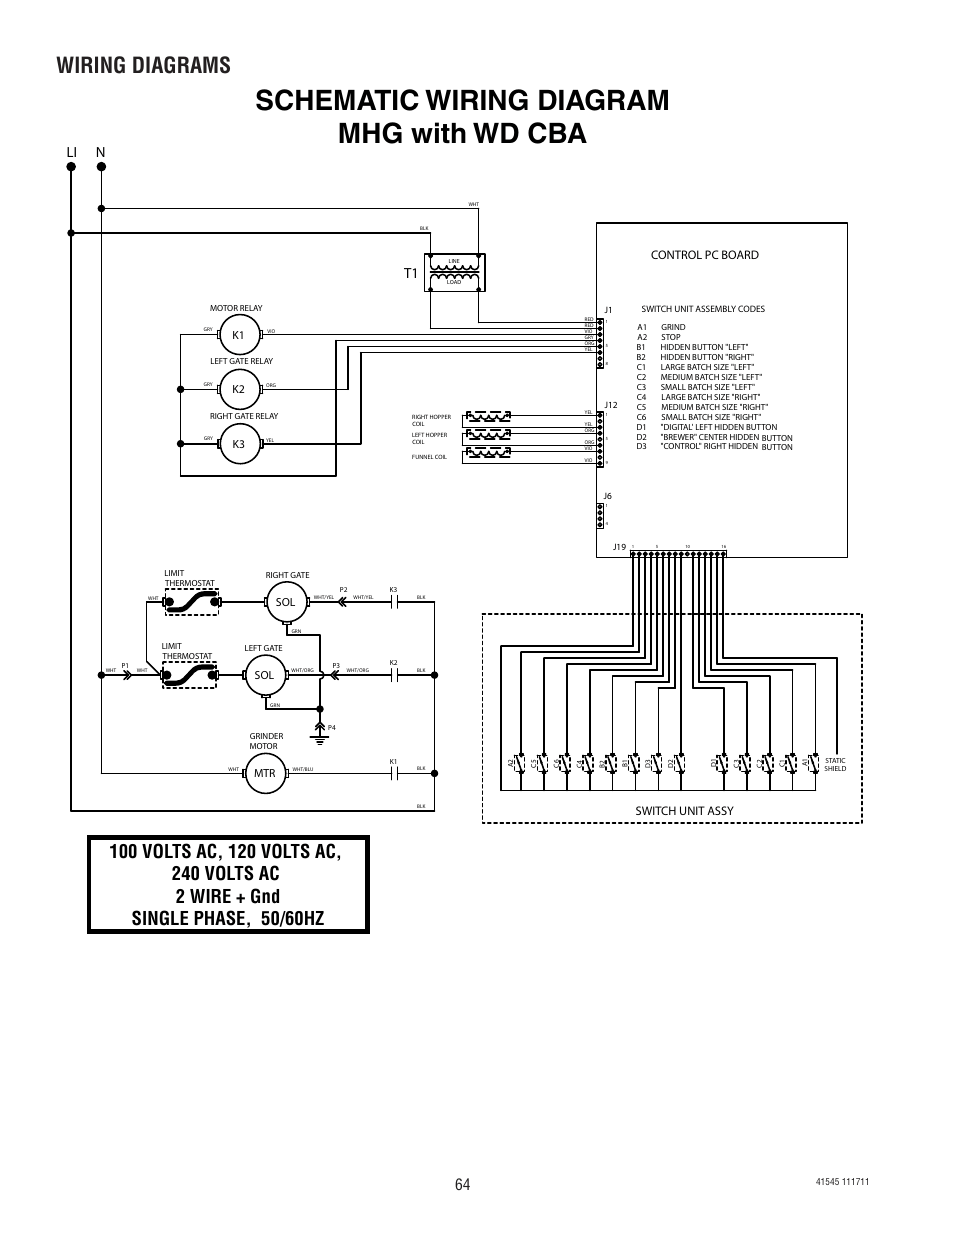 hight resolution of schematic wiring diagram mhg with wd cba wiring diagrams li n bunn g9